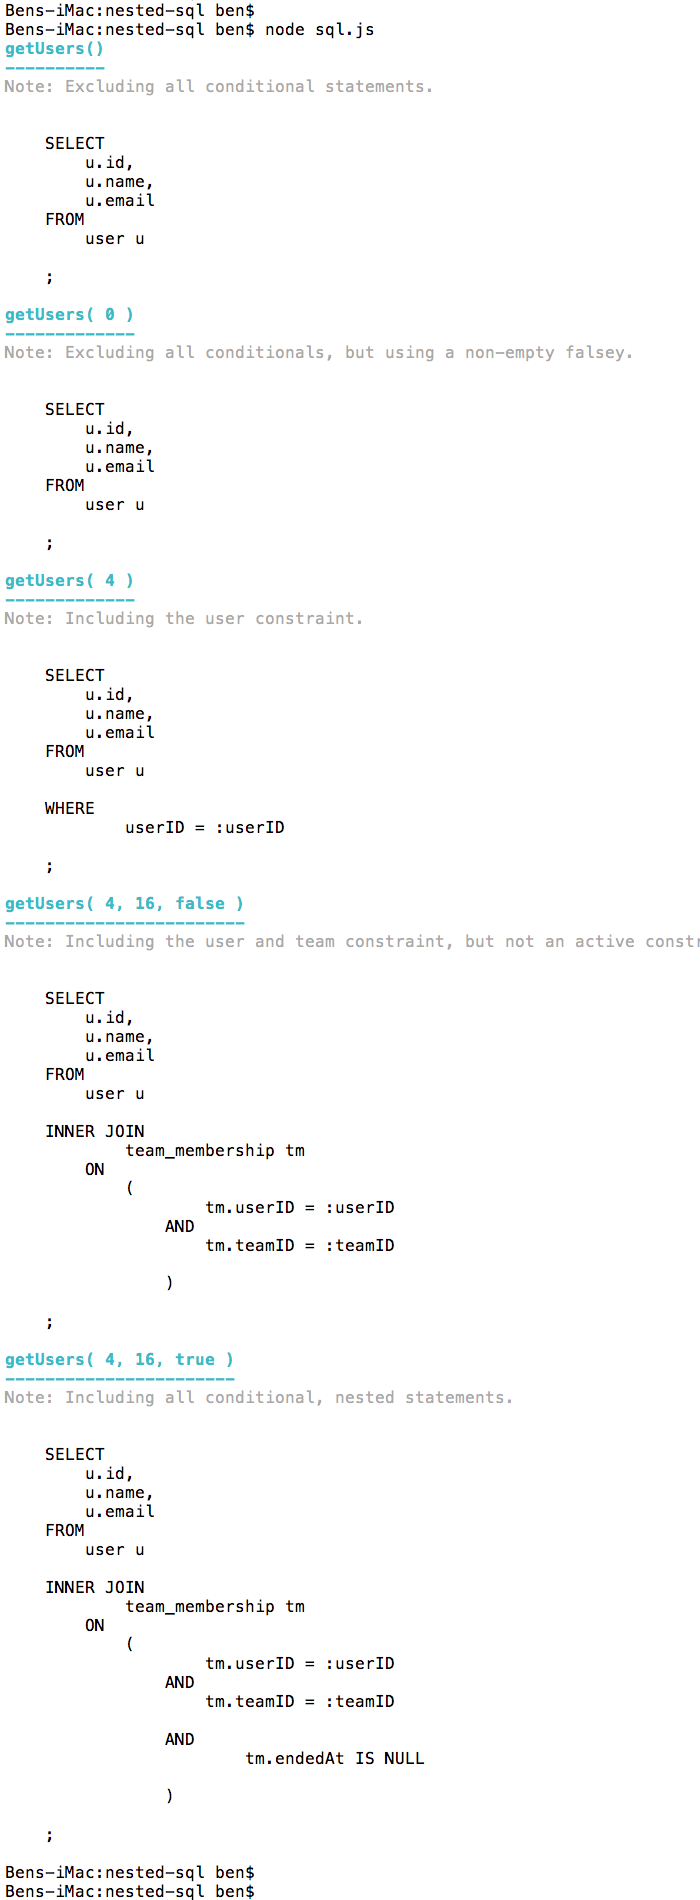 Building conditional sql statements in node.js using nested template literals.